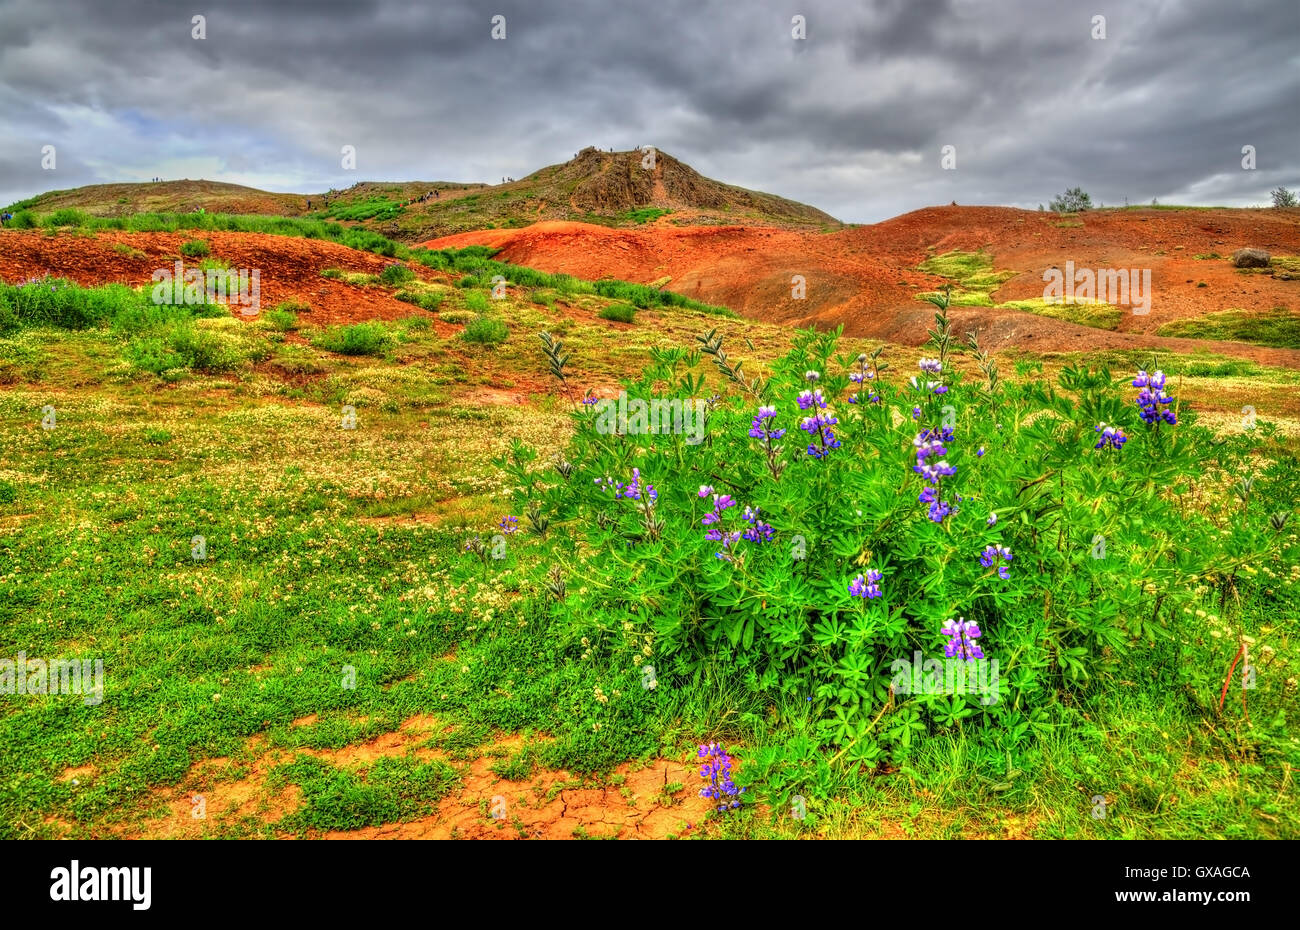 Lupin flower in Haukadalur Valley - Iceland Stock Photo